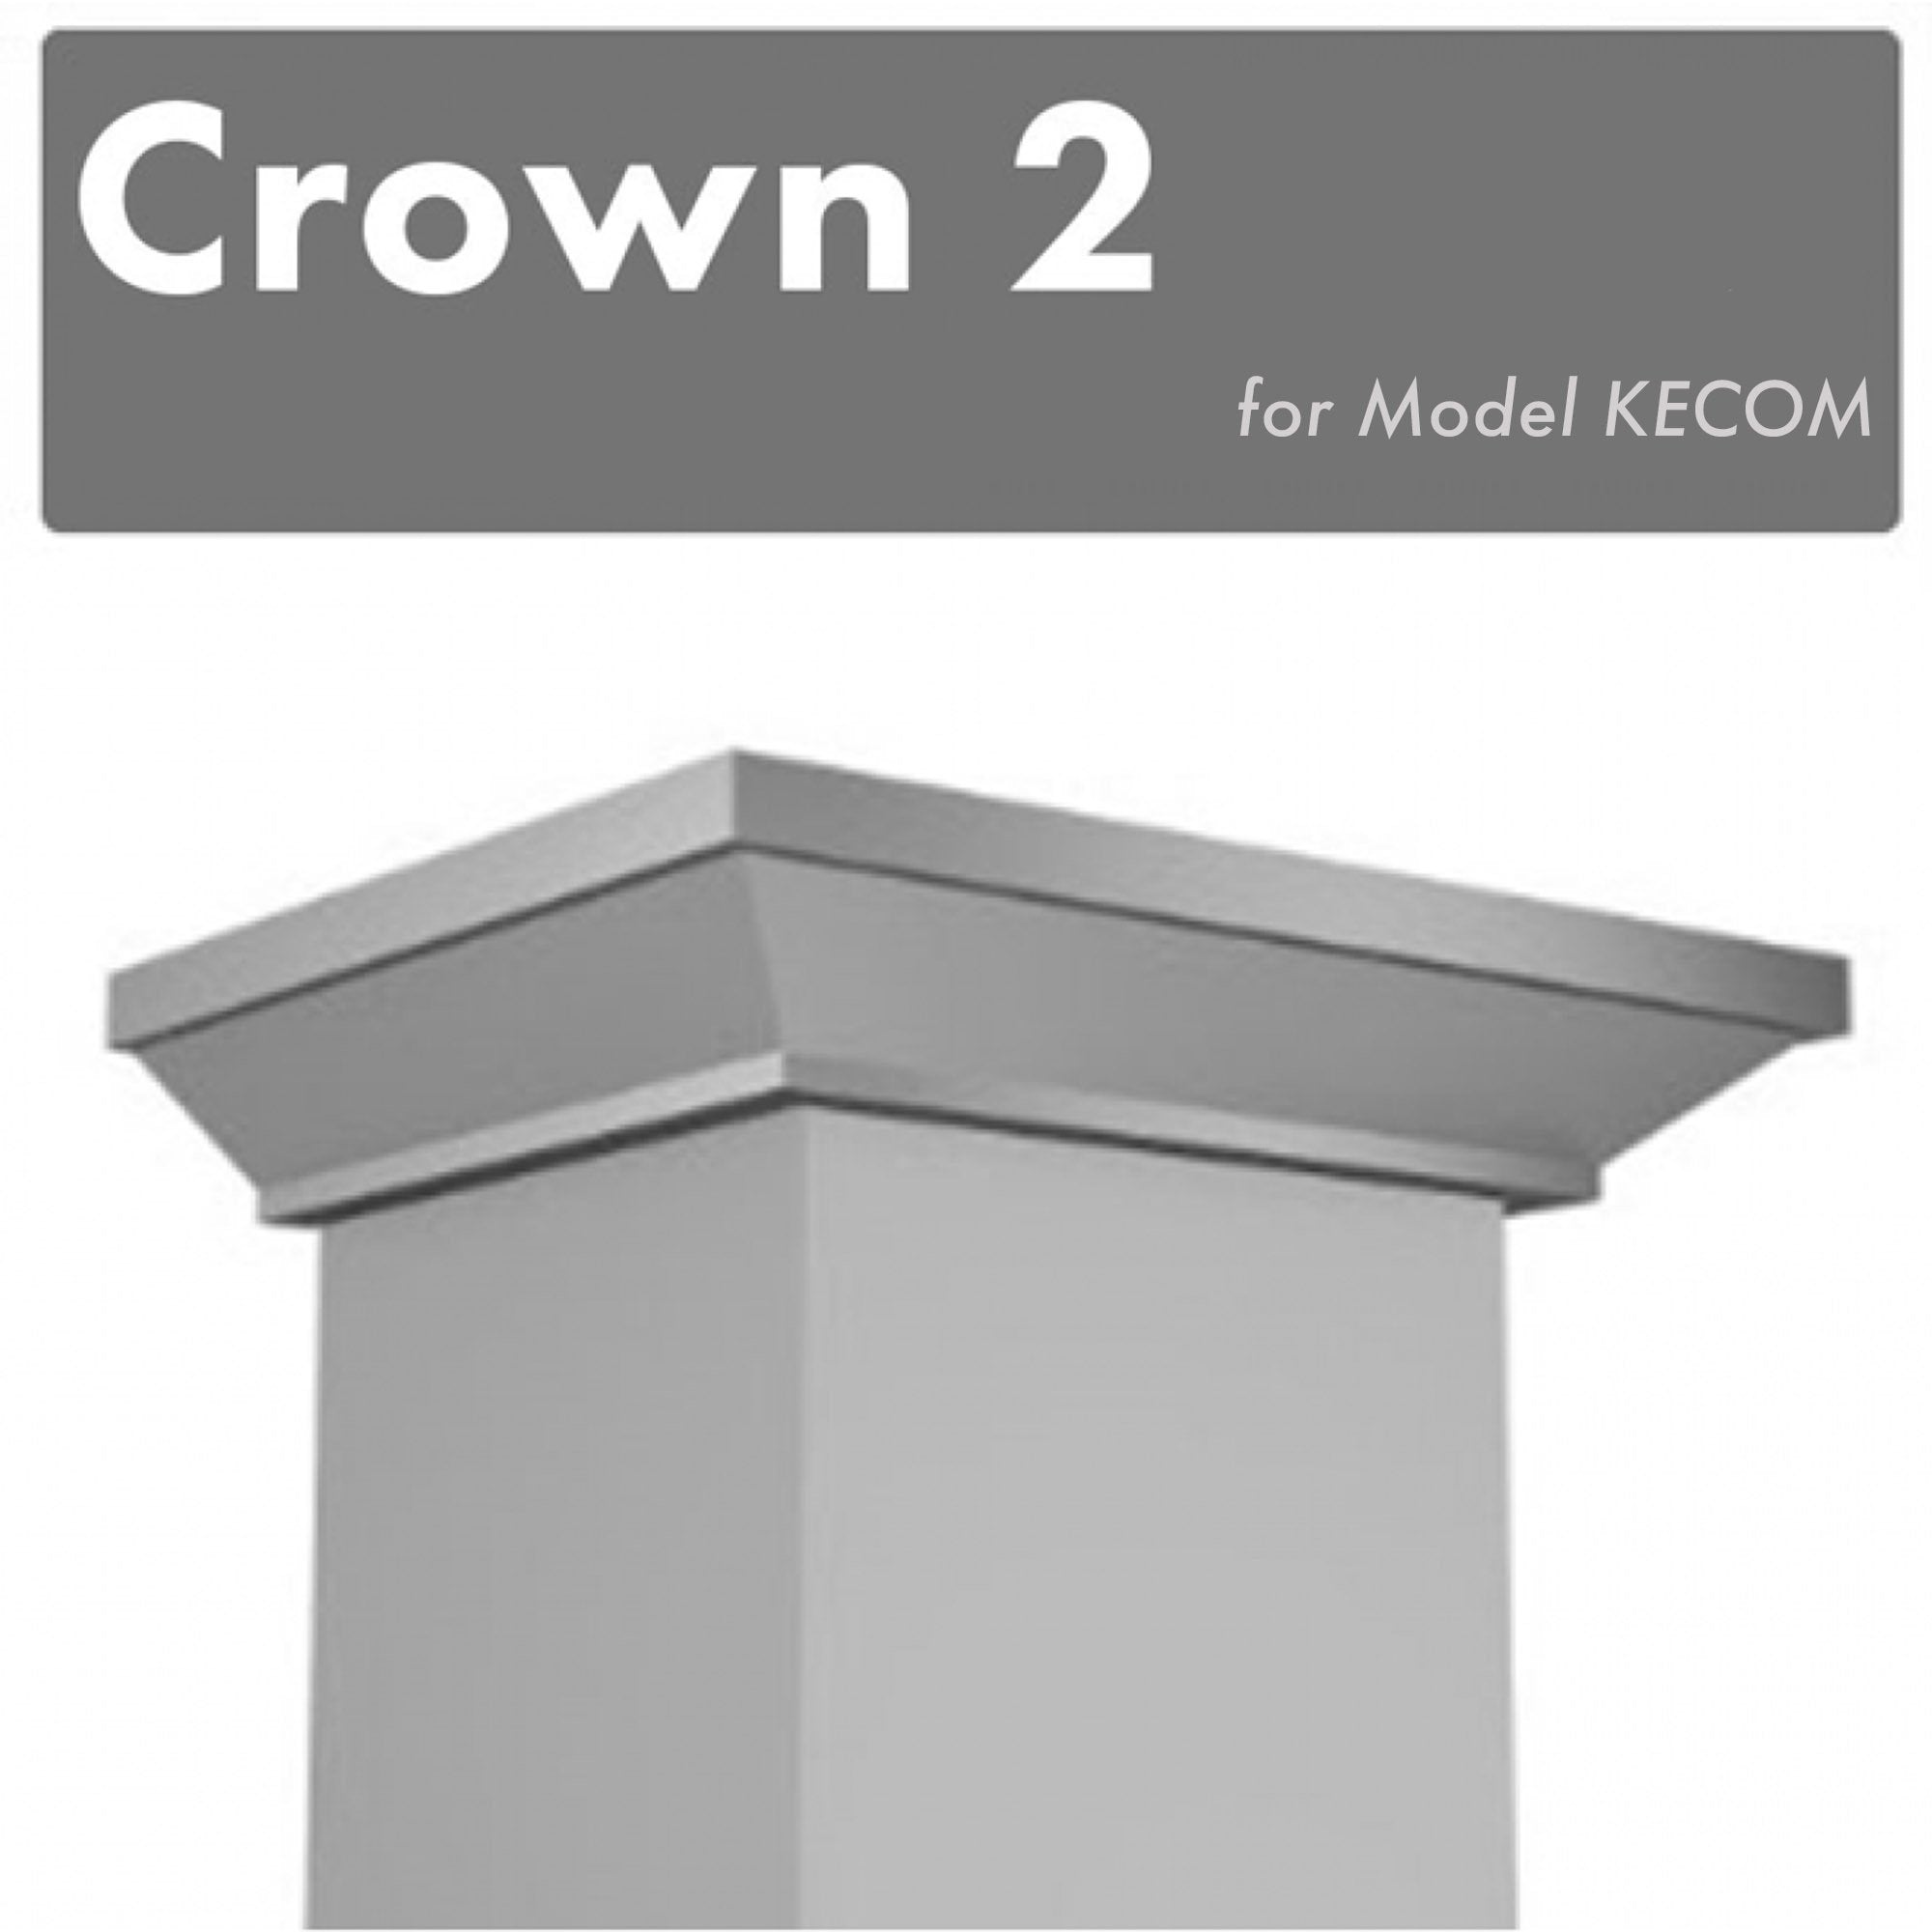 ZLINE Crown Molding Profile 2 for Wall Mount Range Hood (CM2-KECOM)